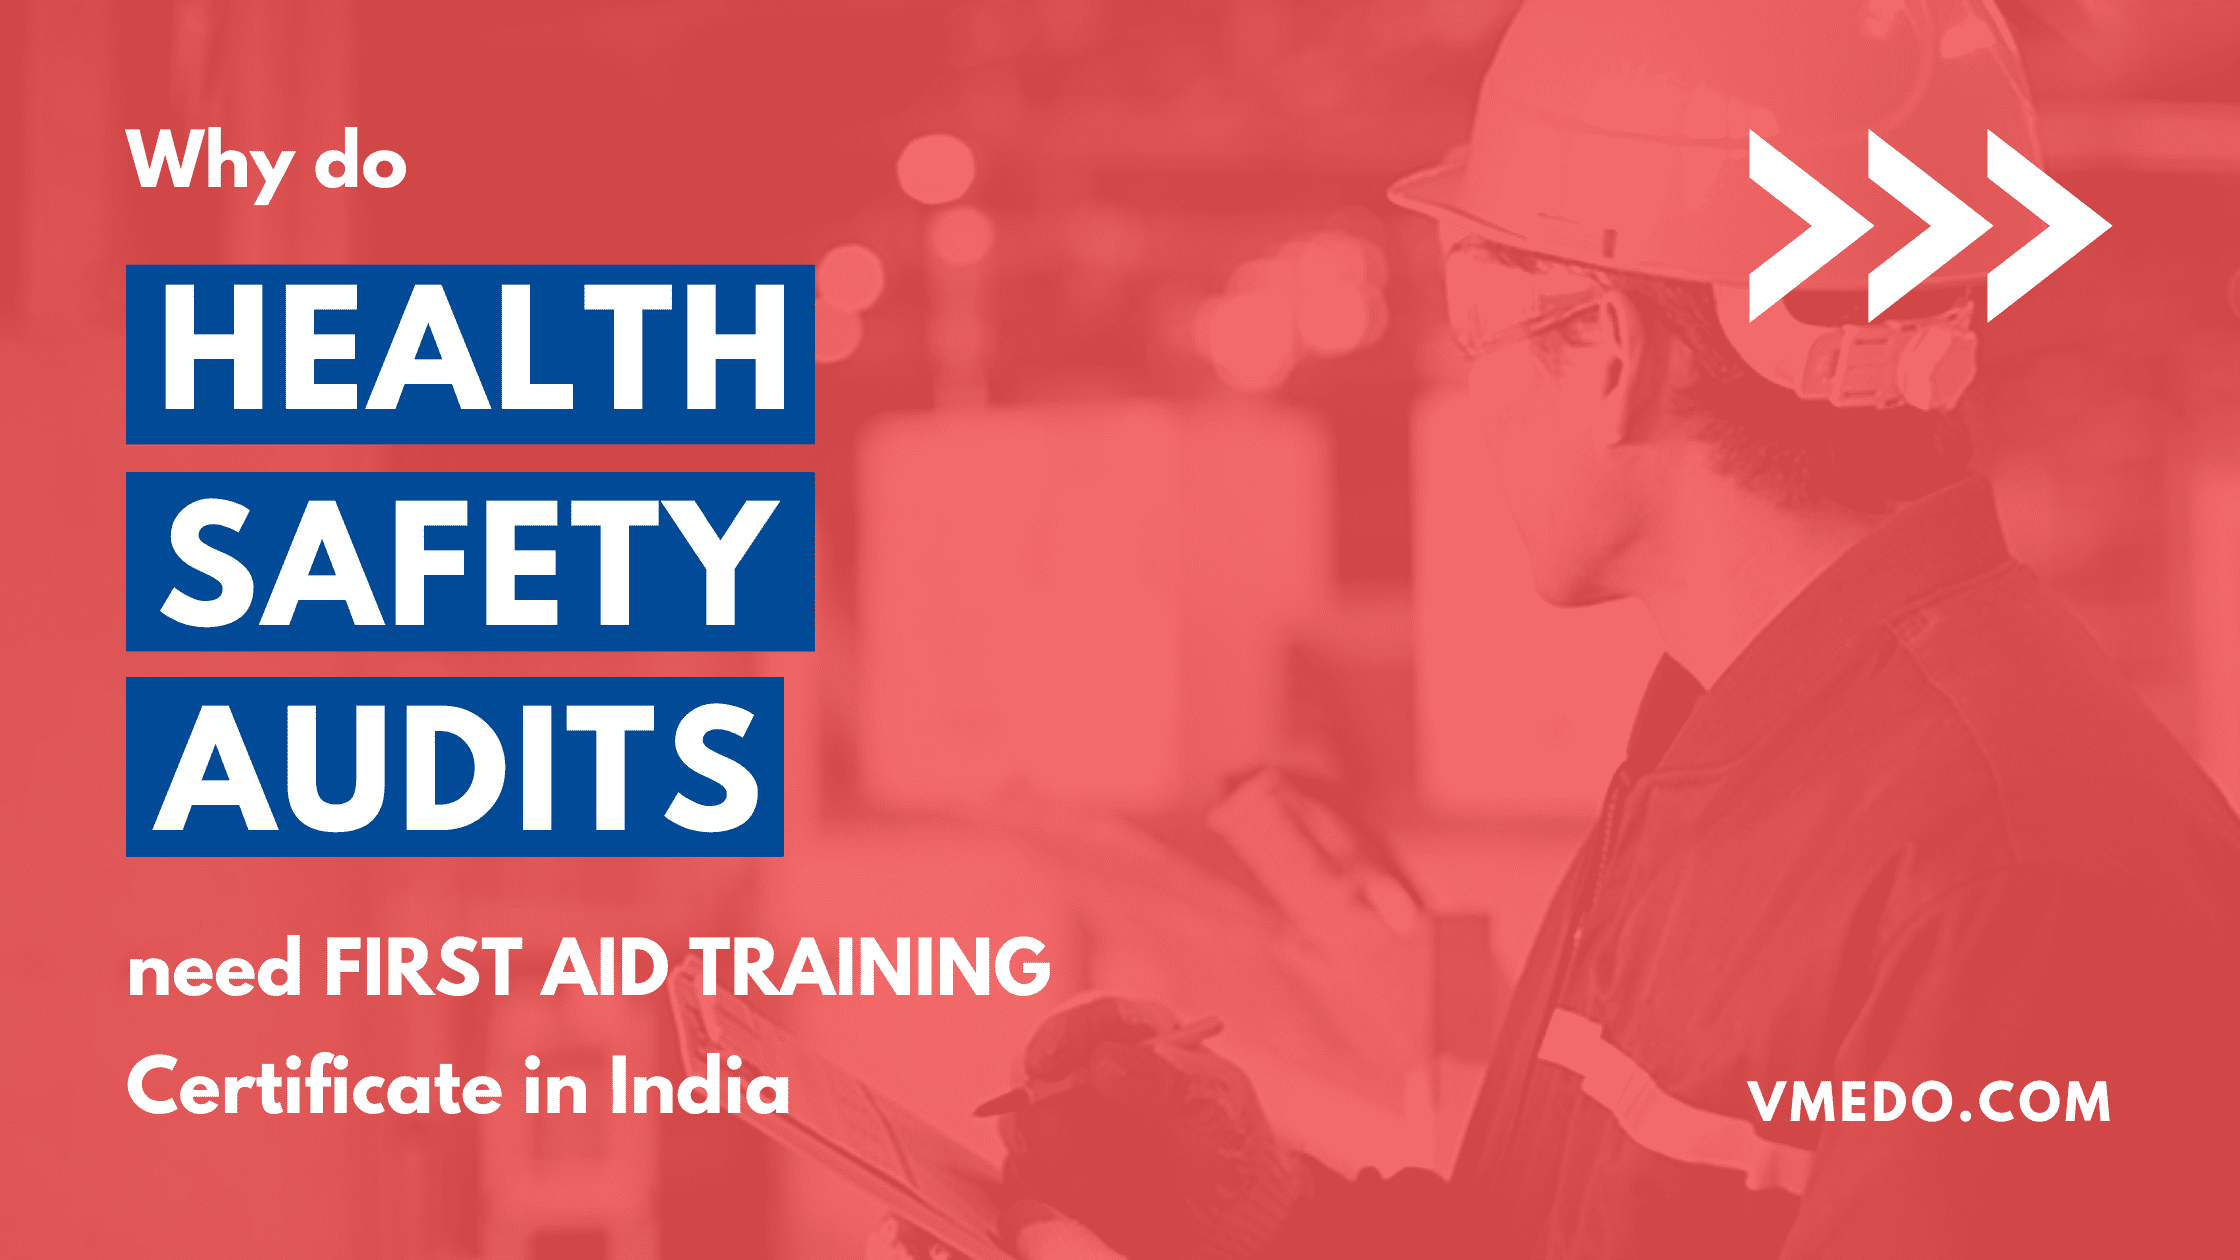 first aid training for health and safety audit